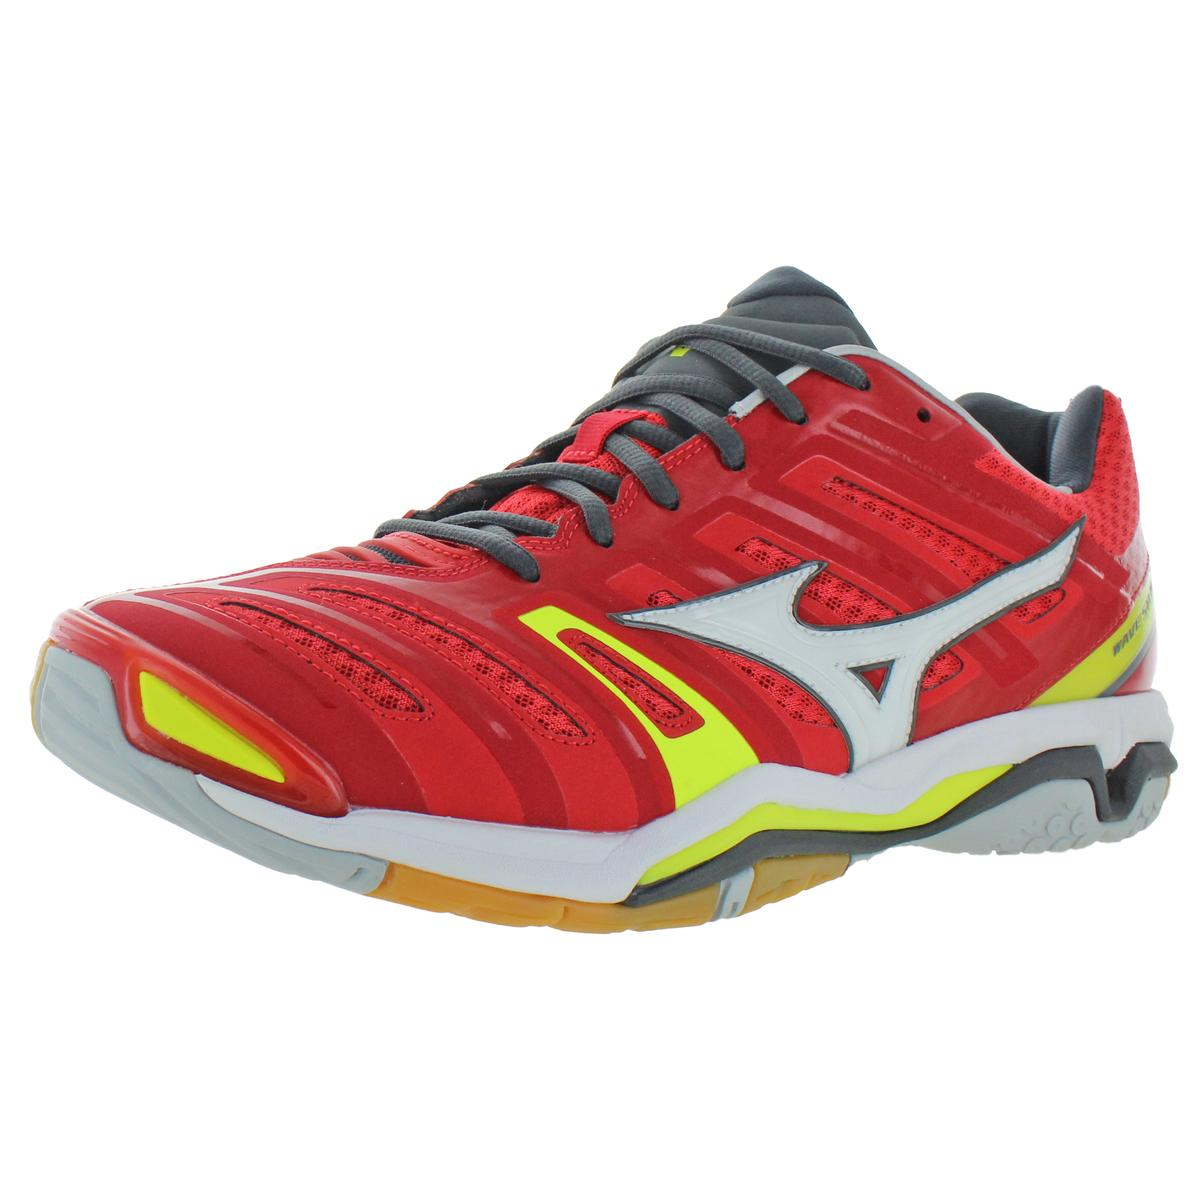 mens mizuno running shoes size 9.5 eu west accounts collection